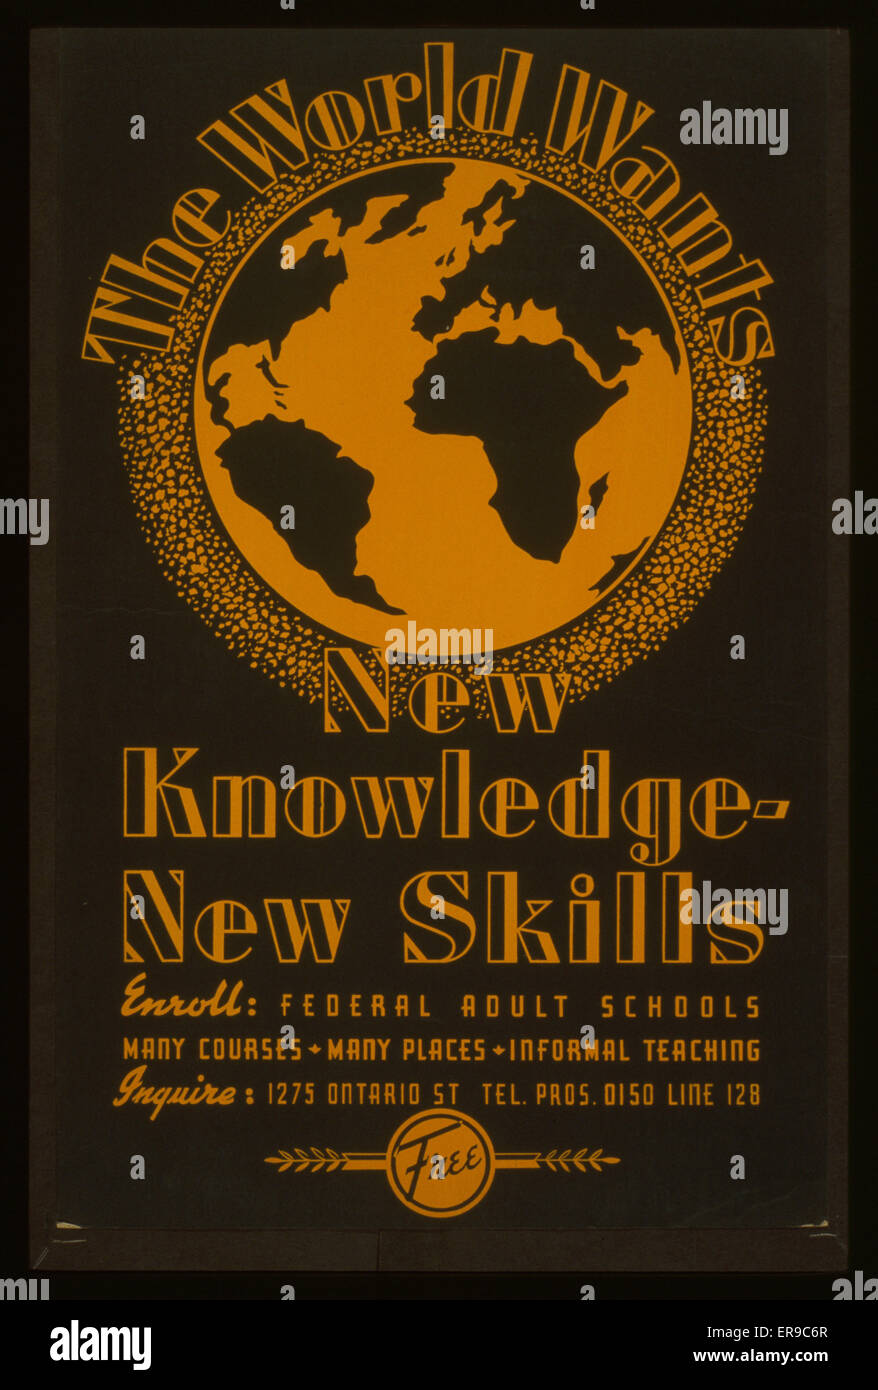 The world wants new knowledge - new skills Enroll - Federal adult schools : Many courses - many places - informal Stock Photo